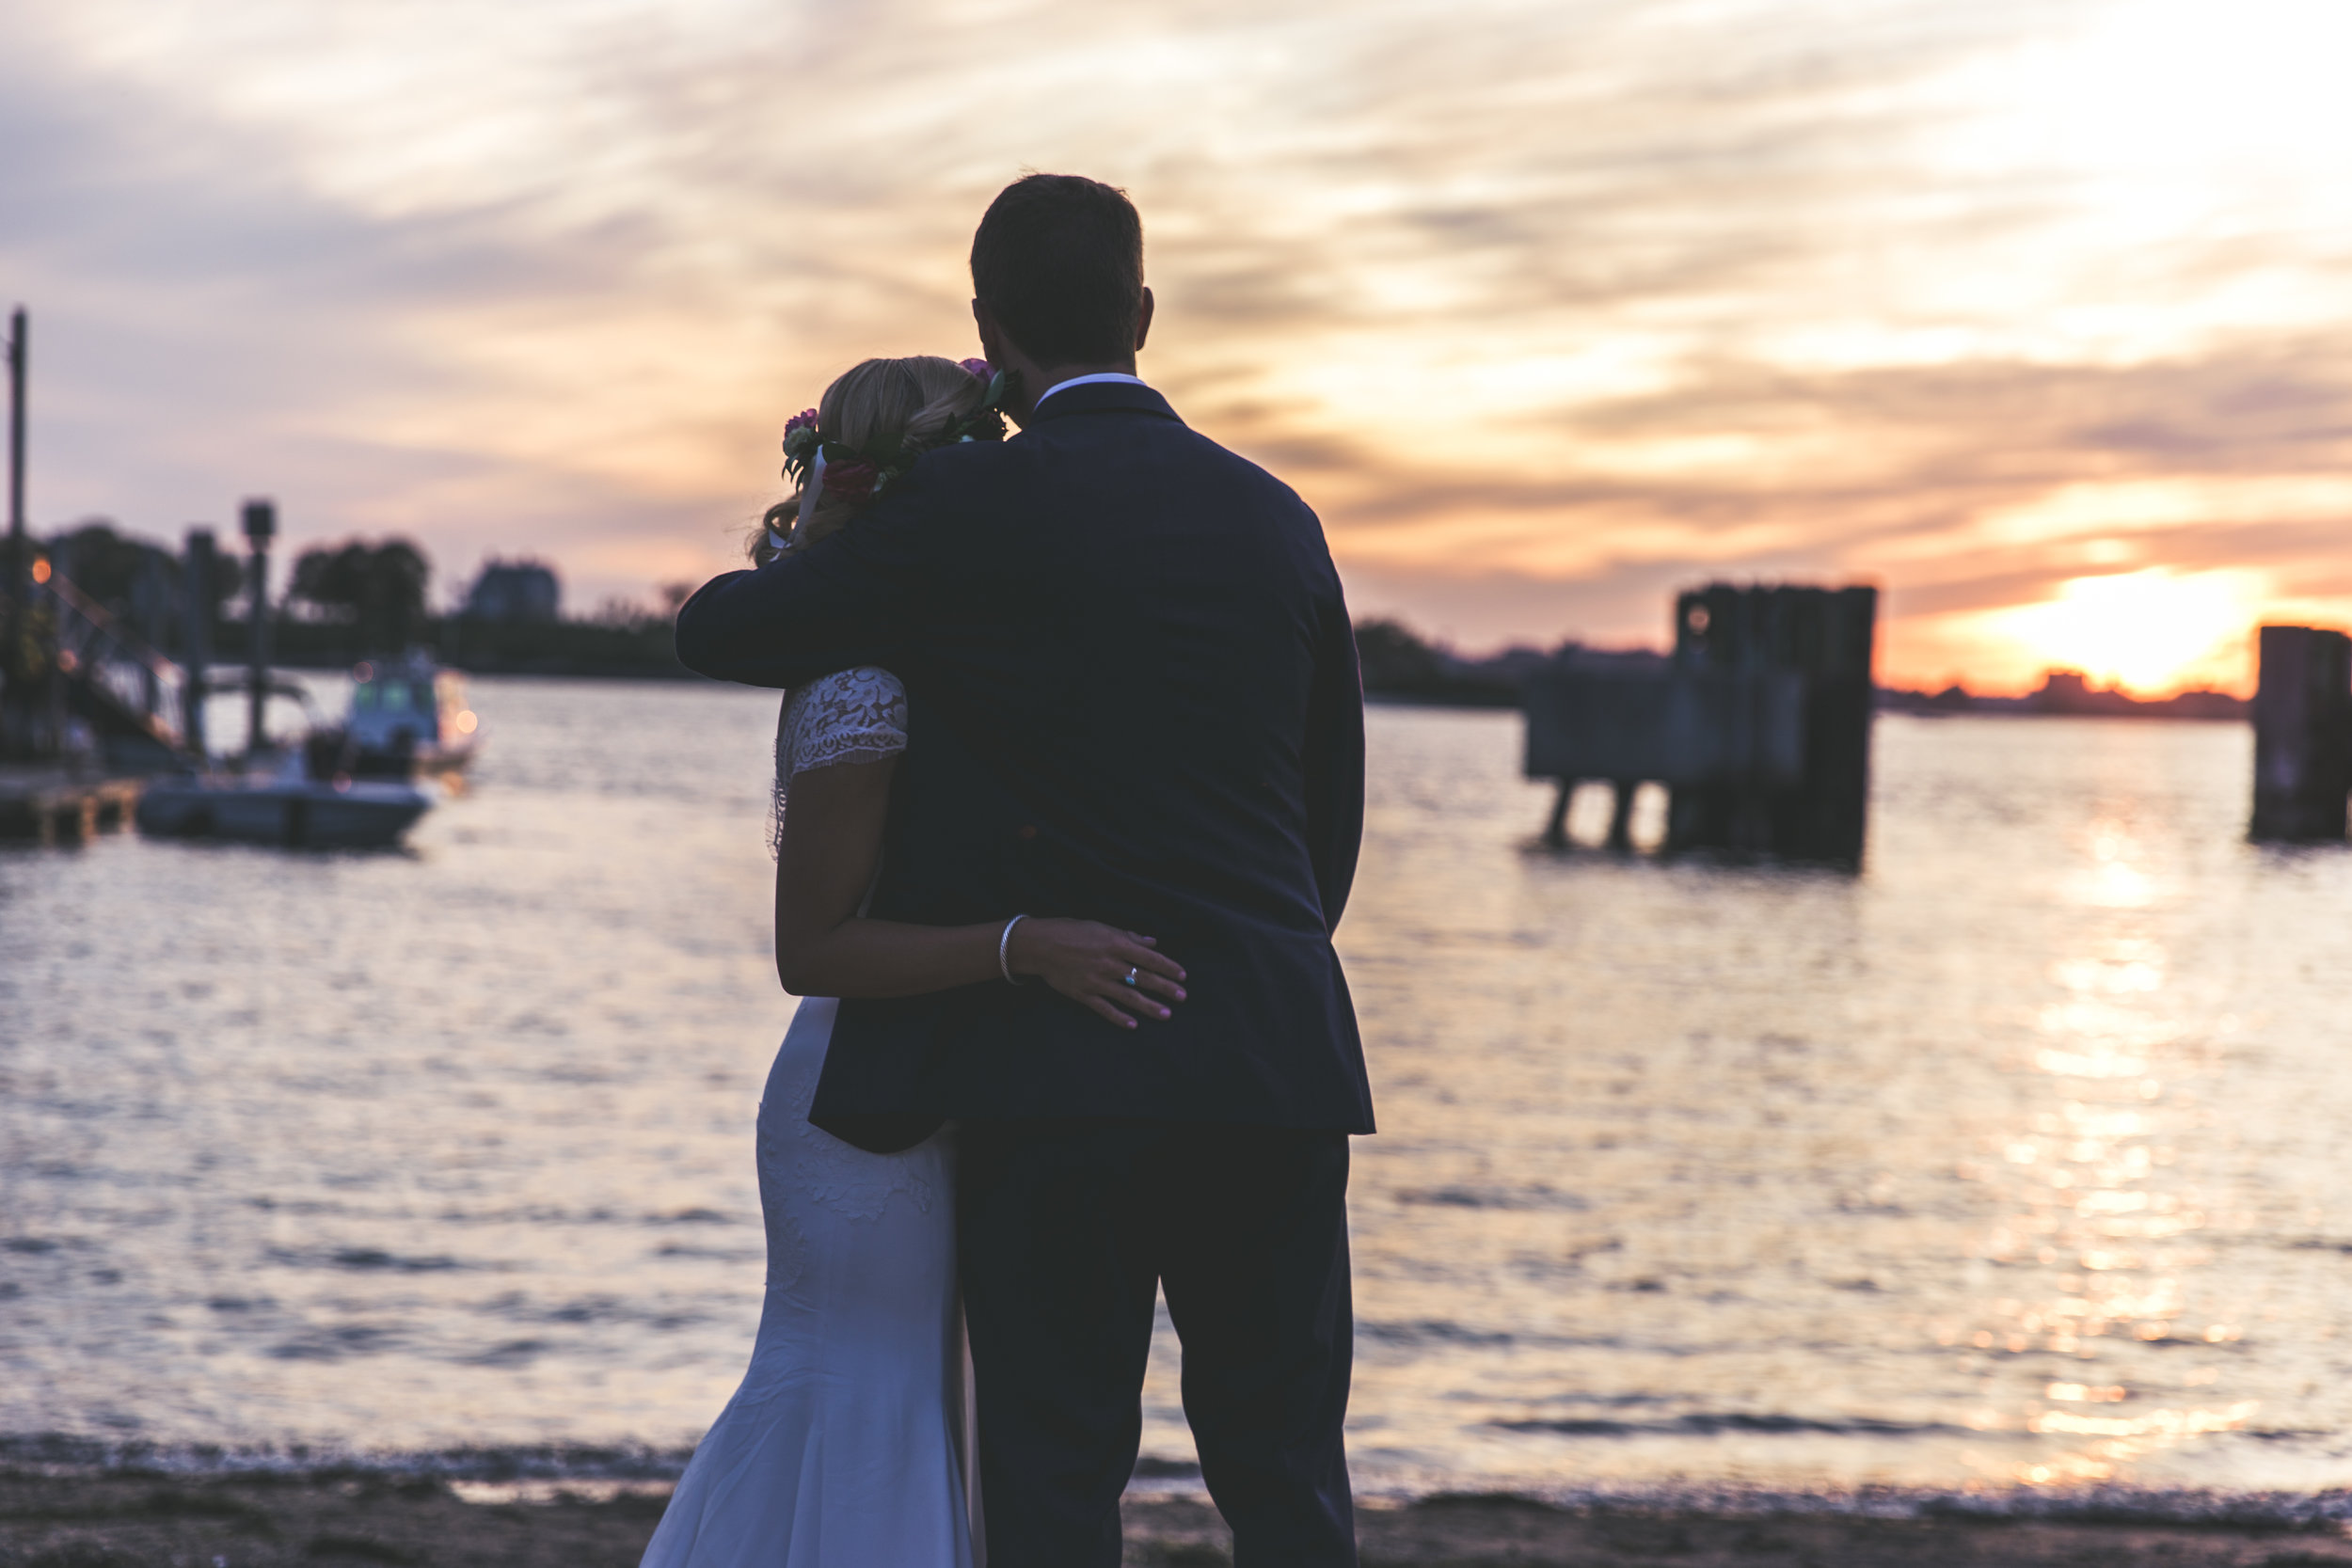 Special Events - Birthdays, weddings, proposals, anniversaries, and other celebrations are magical on the Maine coast. Would you like to plan a special day on the water? Contact us for ideas and help coordinating.